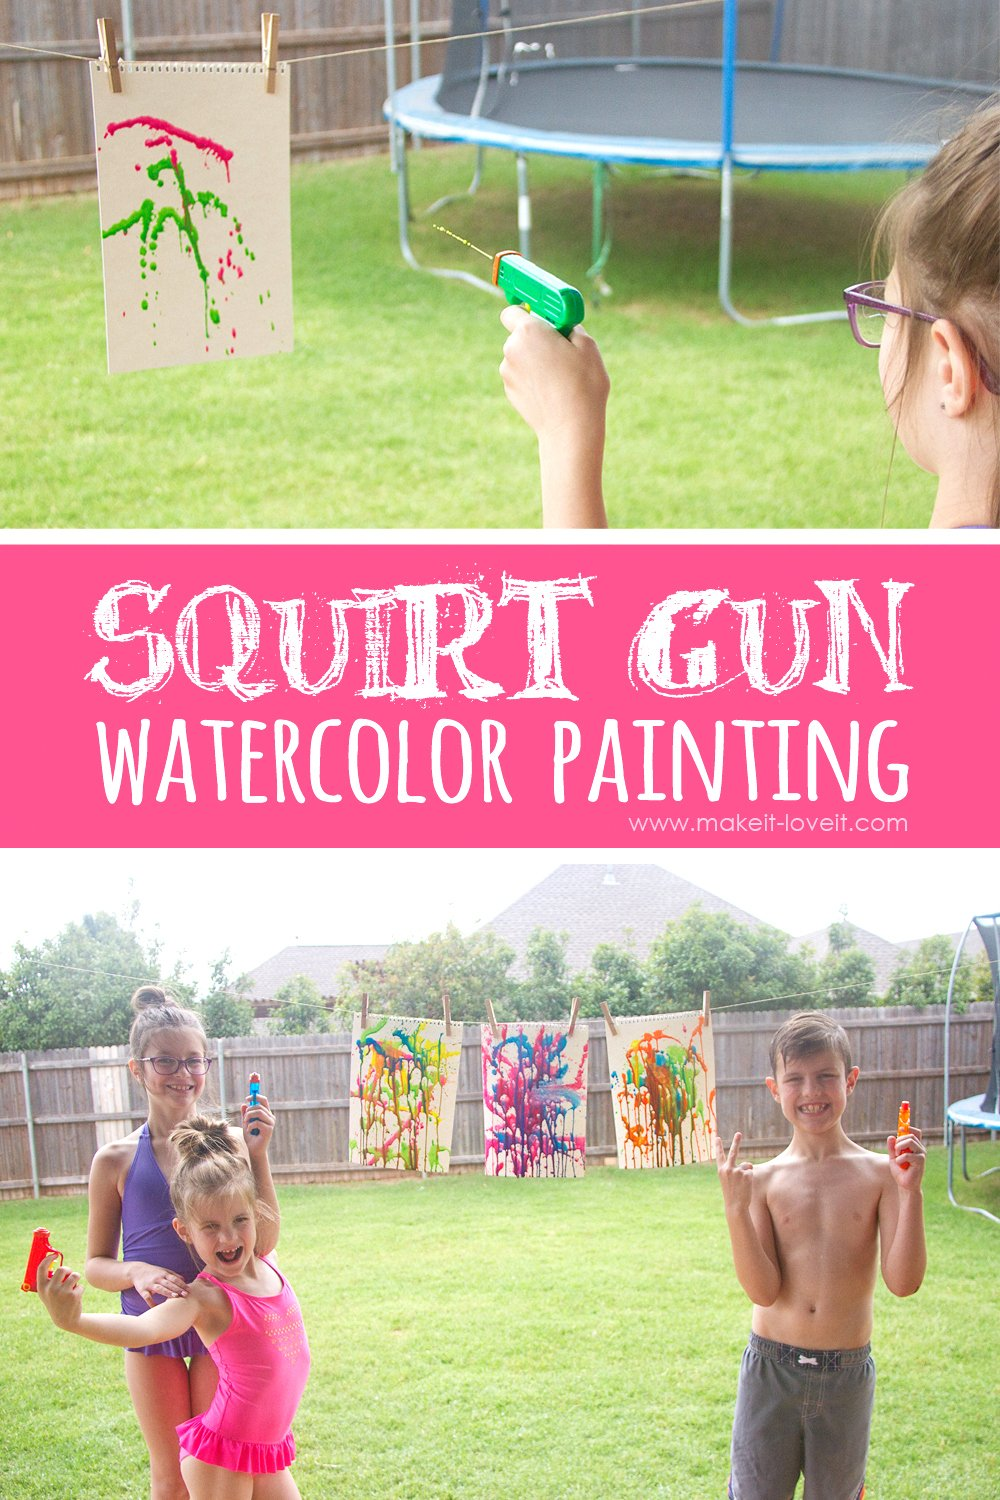 Squirt gun watercolor painting….a fun summer project!!